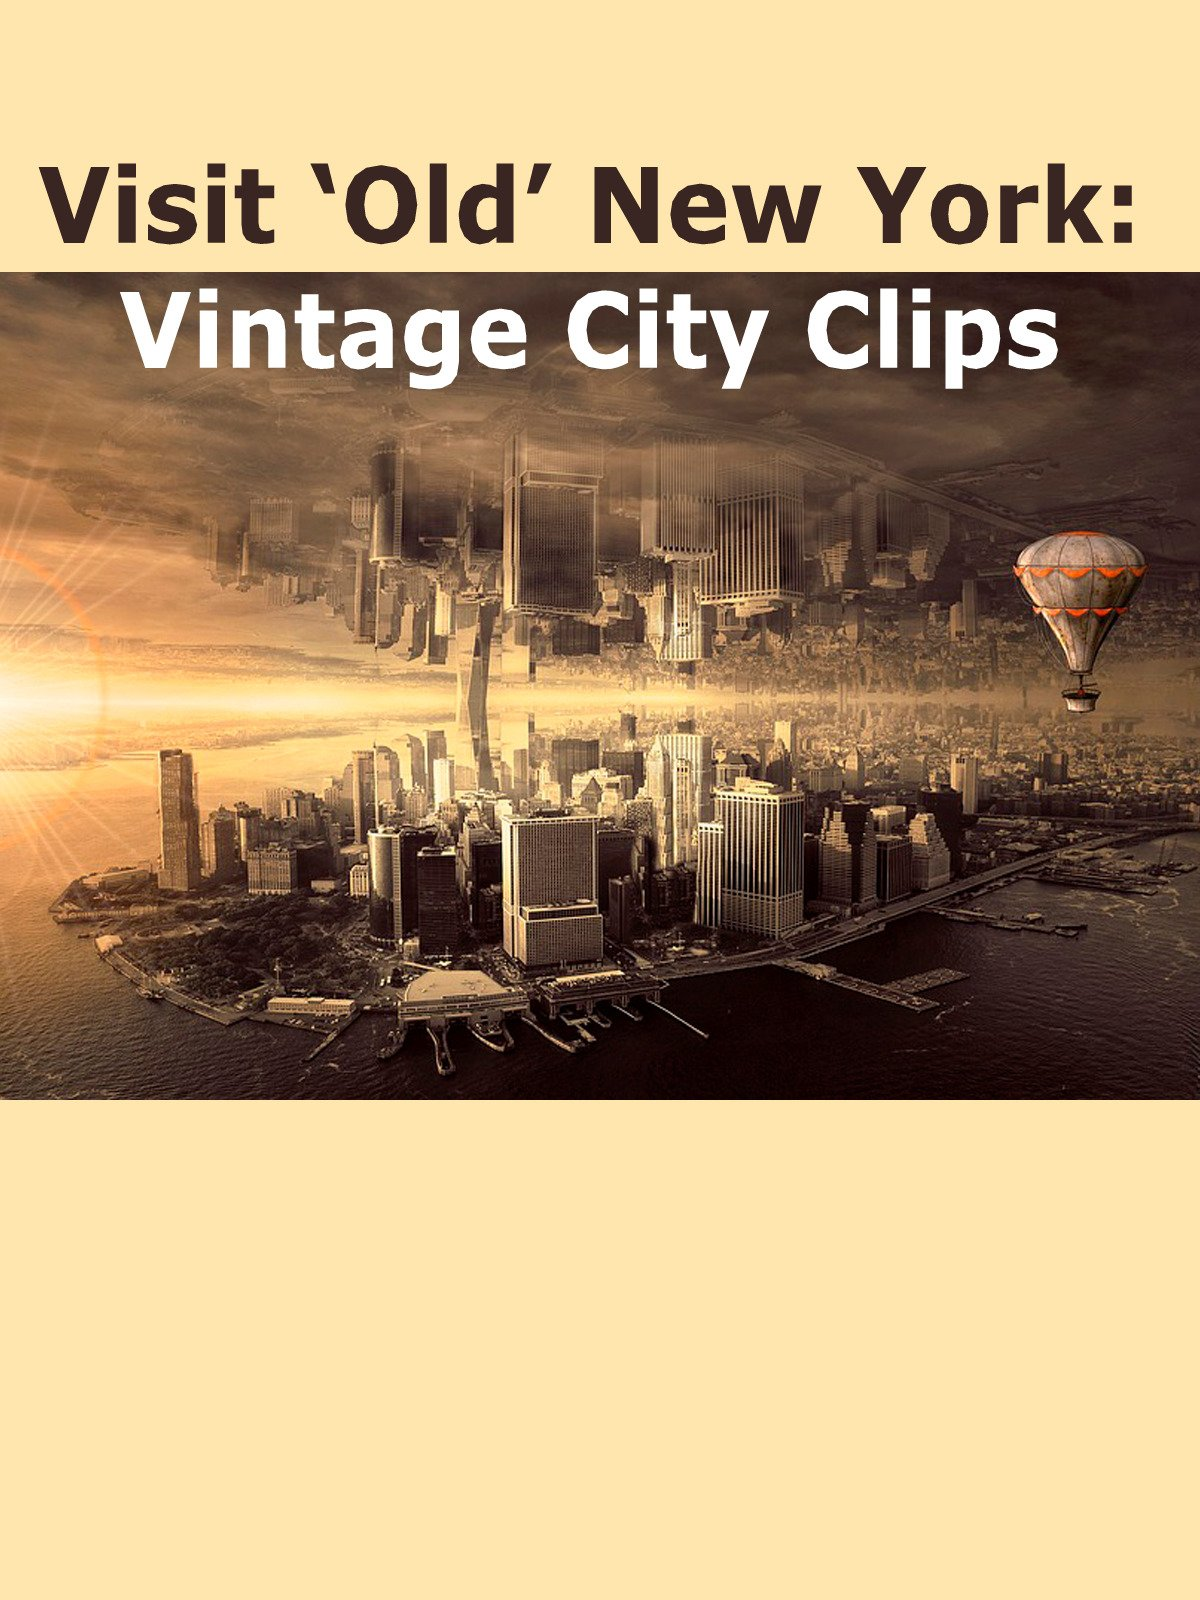 Visit 'Old' New York: Vintage City Clips